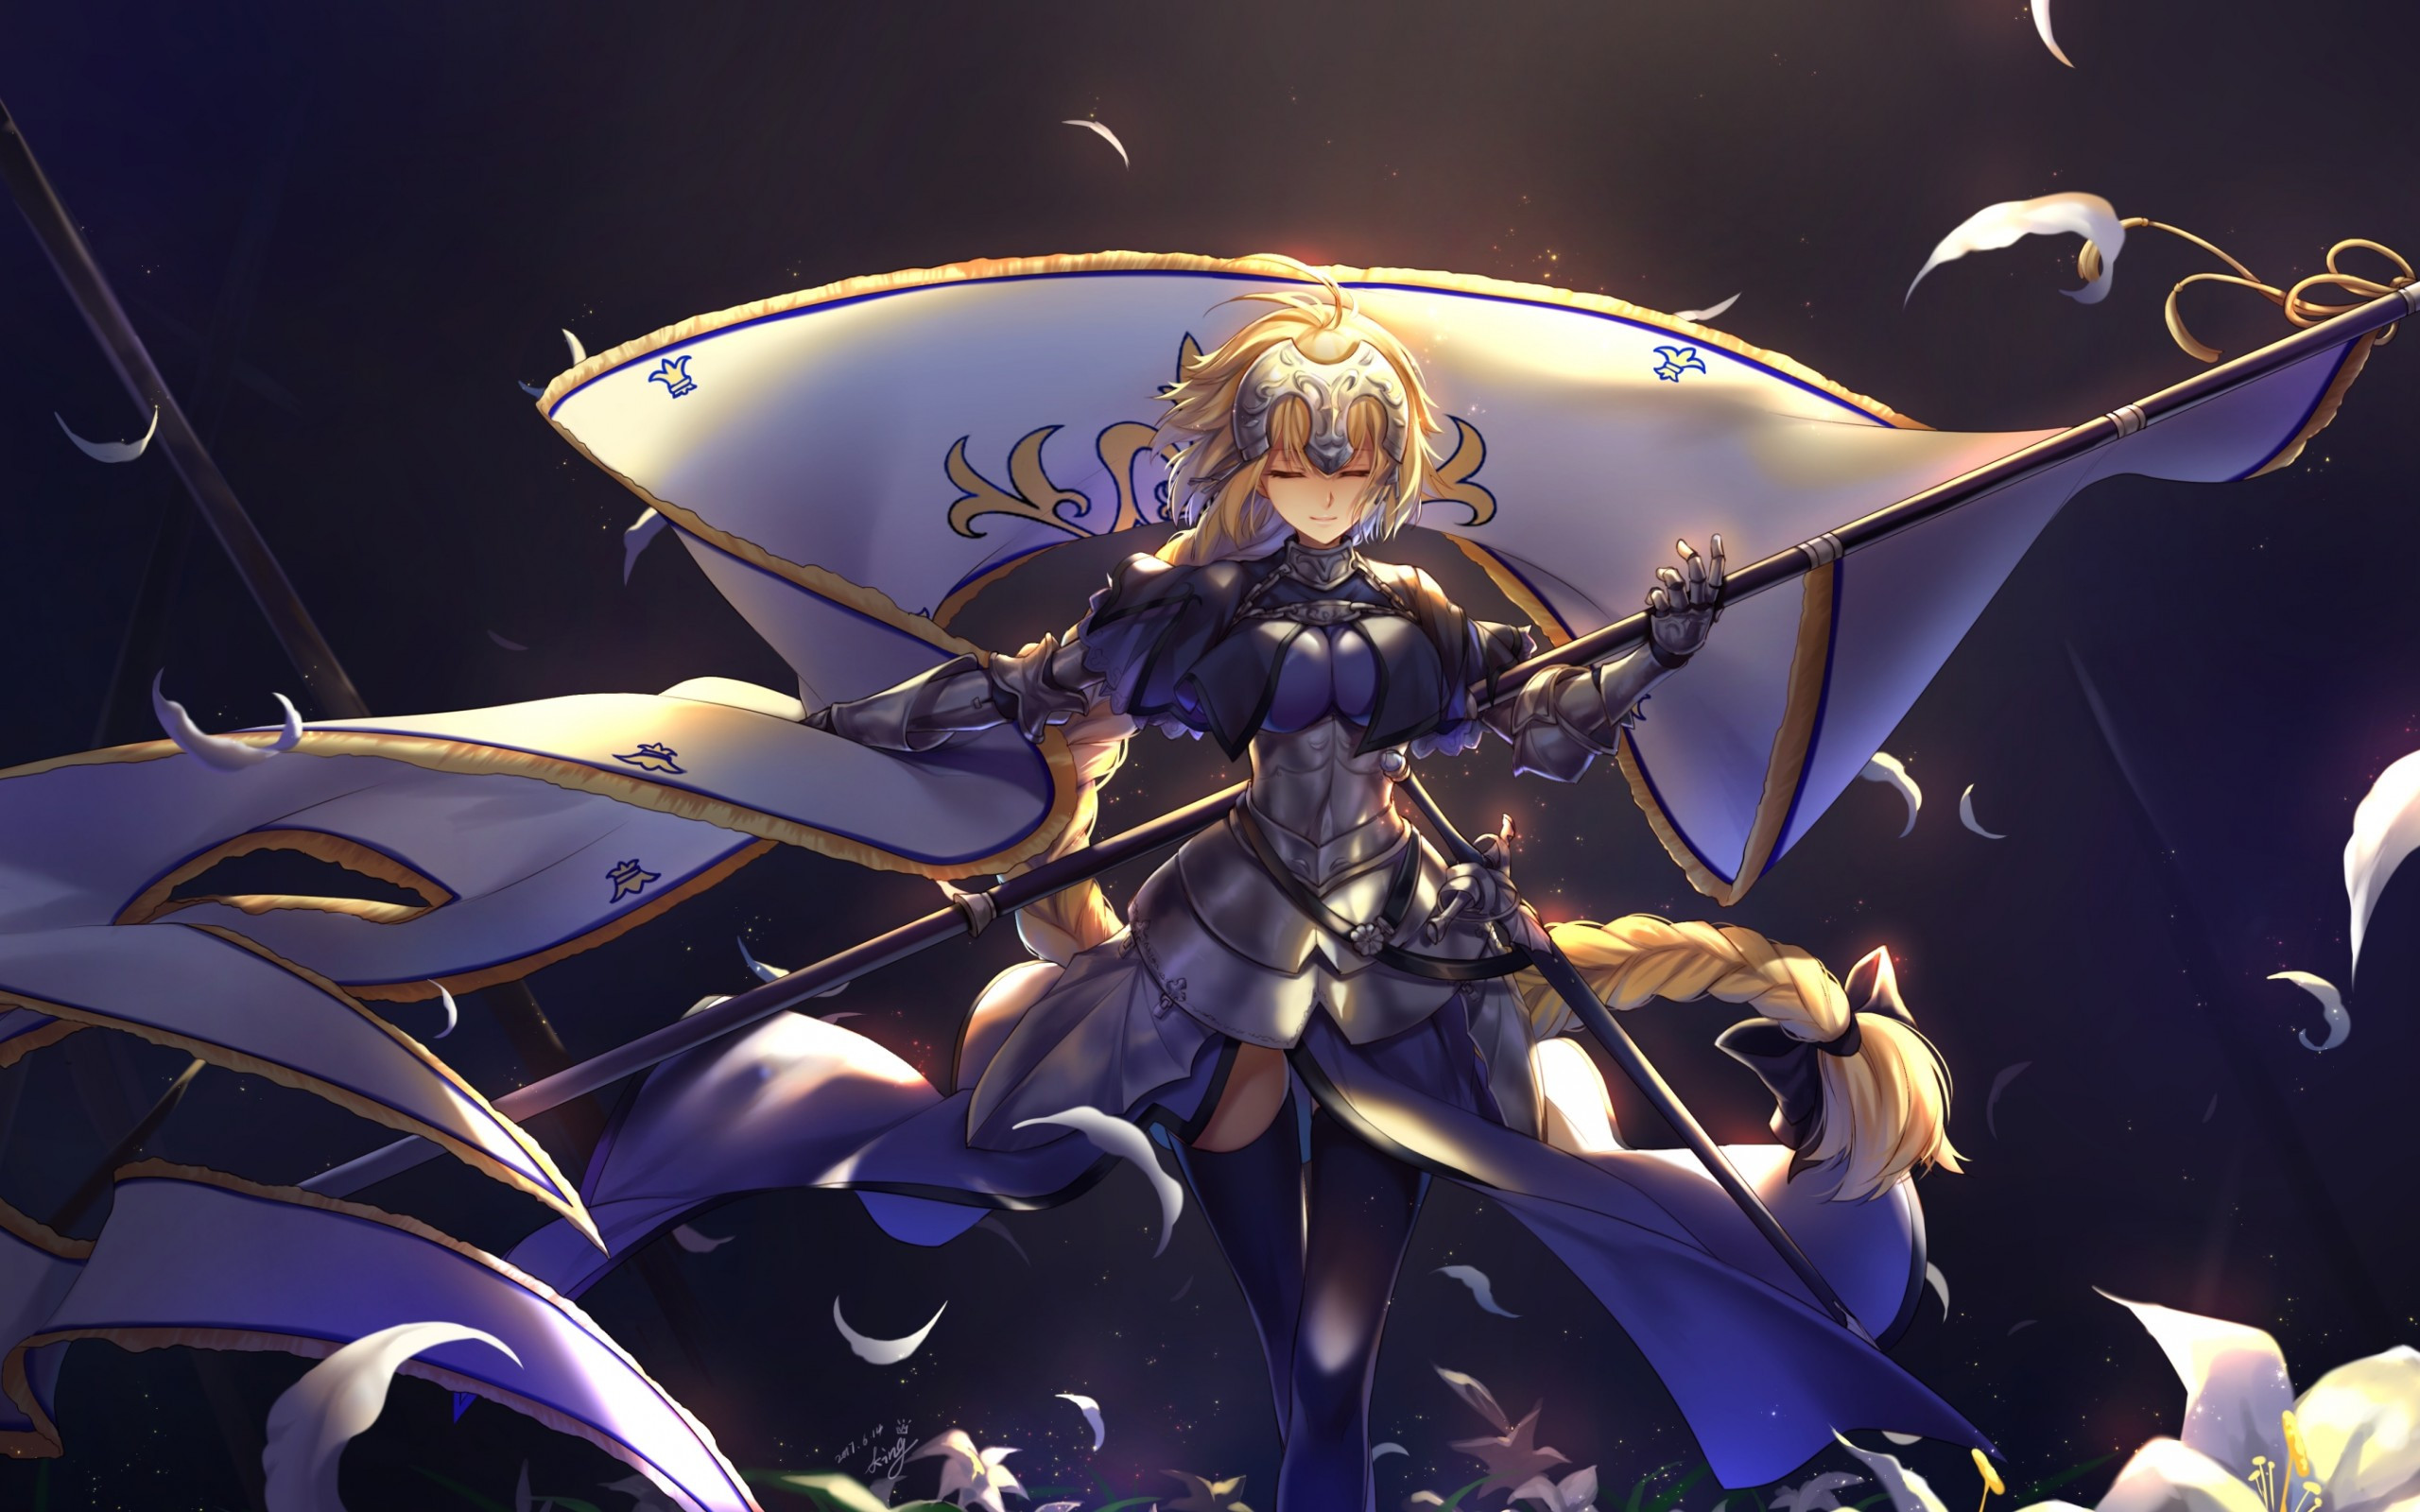 3d Wallpaper For Macbook Pro 13 Download 2560x1600 Jeanne D Arc Fate Apocrypha Fate